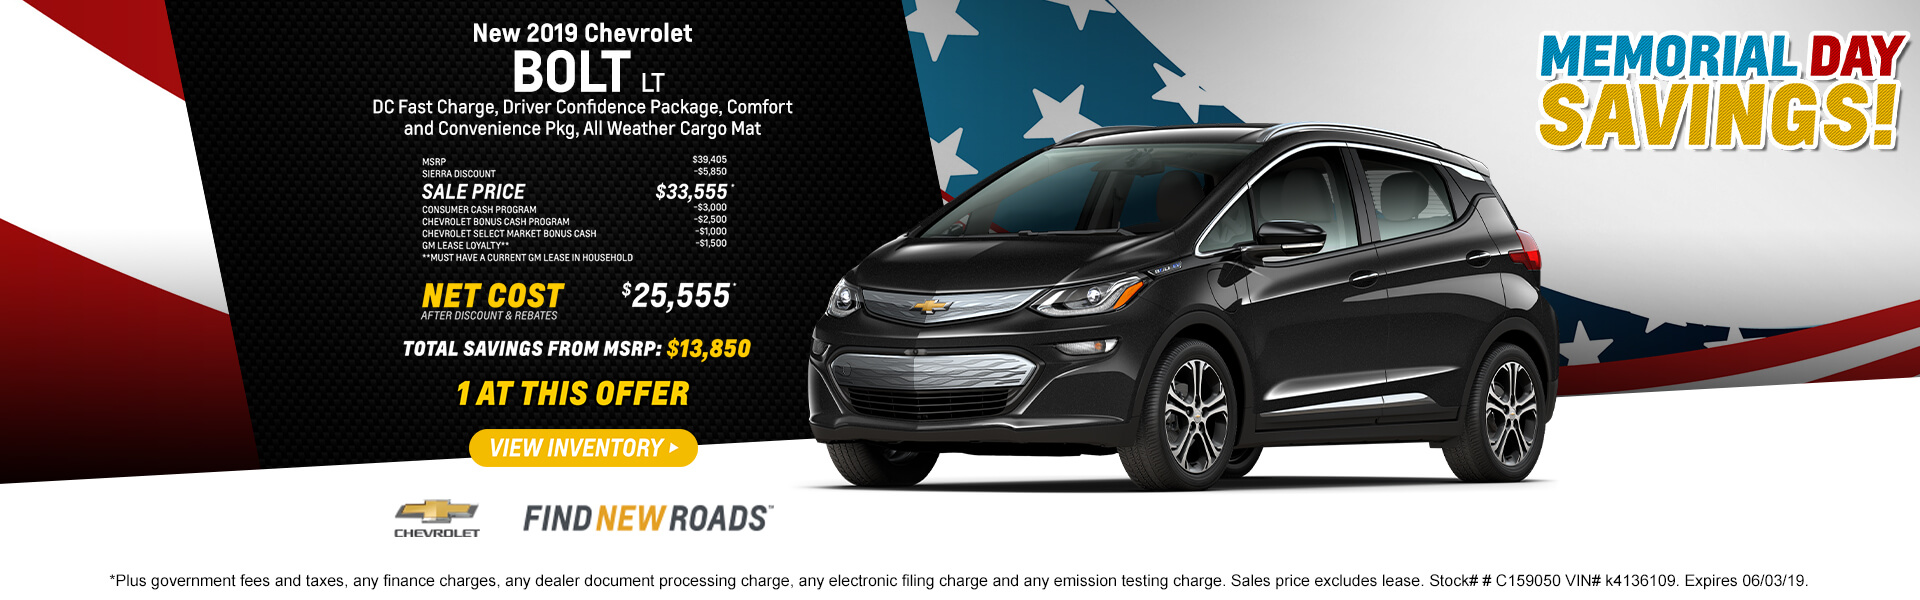 2019 CHEVROLET BOLT LT DC Fast Charge, Driver Confidence Package, Comfort and Convenience Pkg, All Weather Cargo Mat   MSRP $39,405 SIERRA DISCOUNT -$5,850 SALE PRICE $33,555* CONSUMER CASH PROGRAM -$3,000 CHEVROLET BONUS CASH PROGRAM -$2,500 CHEVROLET SELECT MARKET BONUS CASH -$1,000 GM LEASE LOYALTY** -$1,500 **Must have a current GM lease in household NET COST AFTER DISCOUNT & REBATES $25,555*  Total Savings from MSRP $13,850  1 AT THIS OFFER  *Plus government fees and taxes, any finance charges, any dealer document processing charge, any electronic filing charge and any emission testing charge. Sales price excludes lease. Stock# # C159050 VIN# k4136109. Expires 06/03/19.